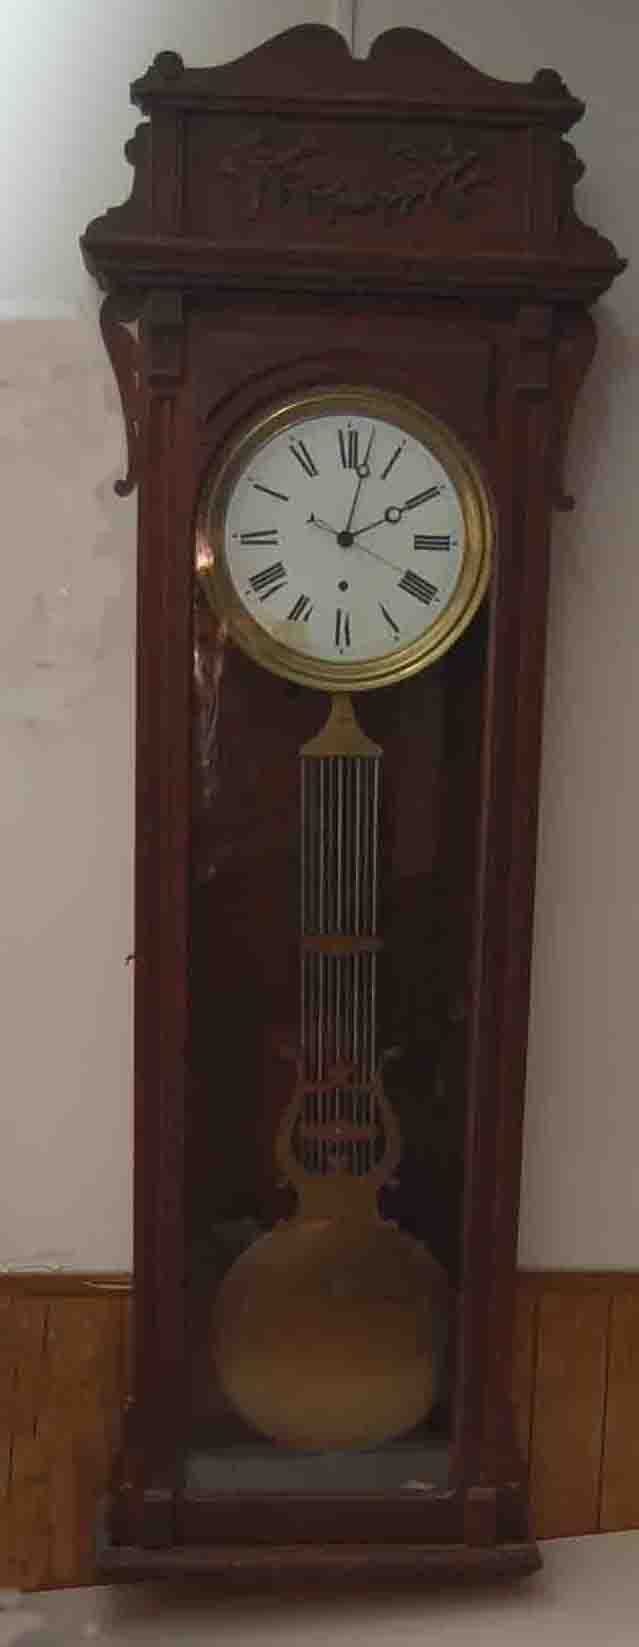 Antique Wall Clocks Sale Antique Wall Clocks Mackey's